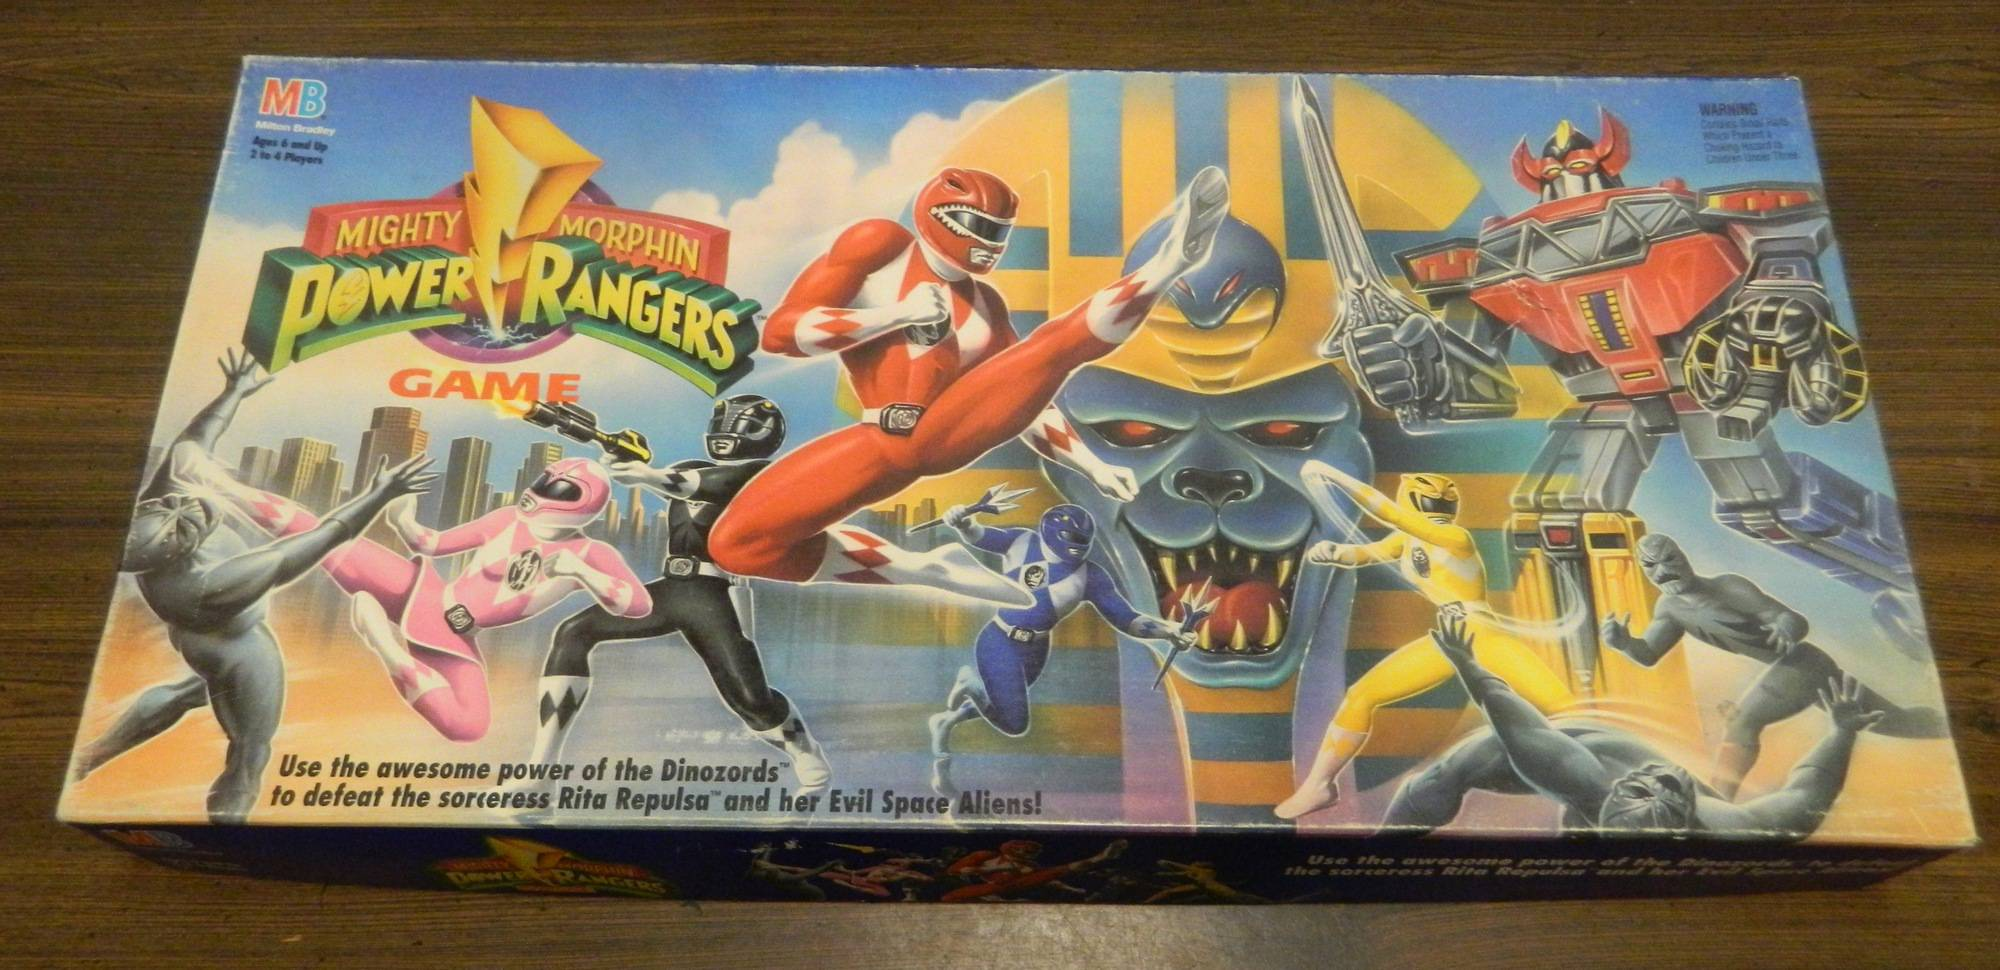 Box for Mighty Morphin Power Rangers Game